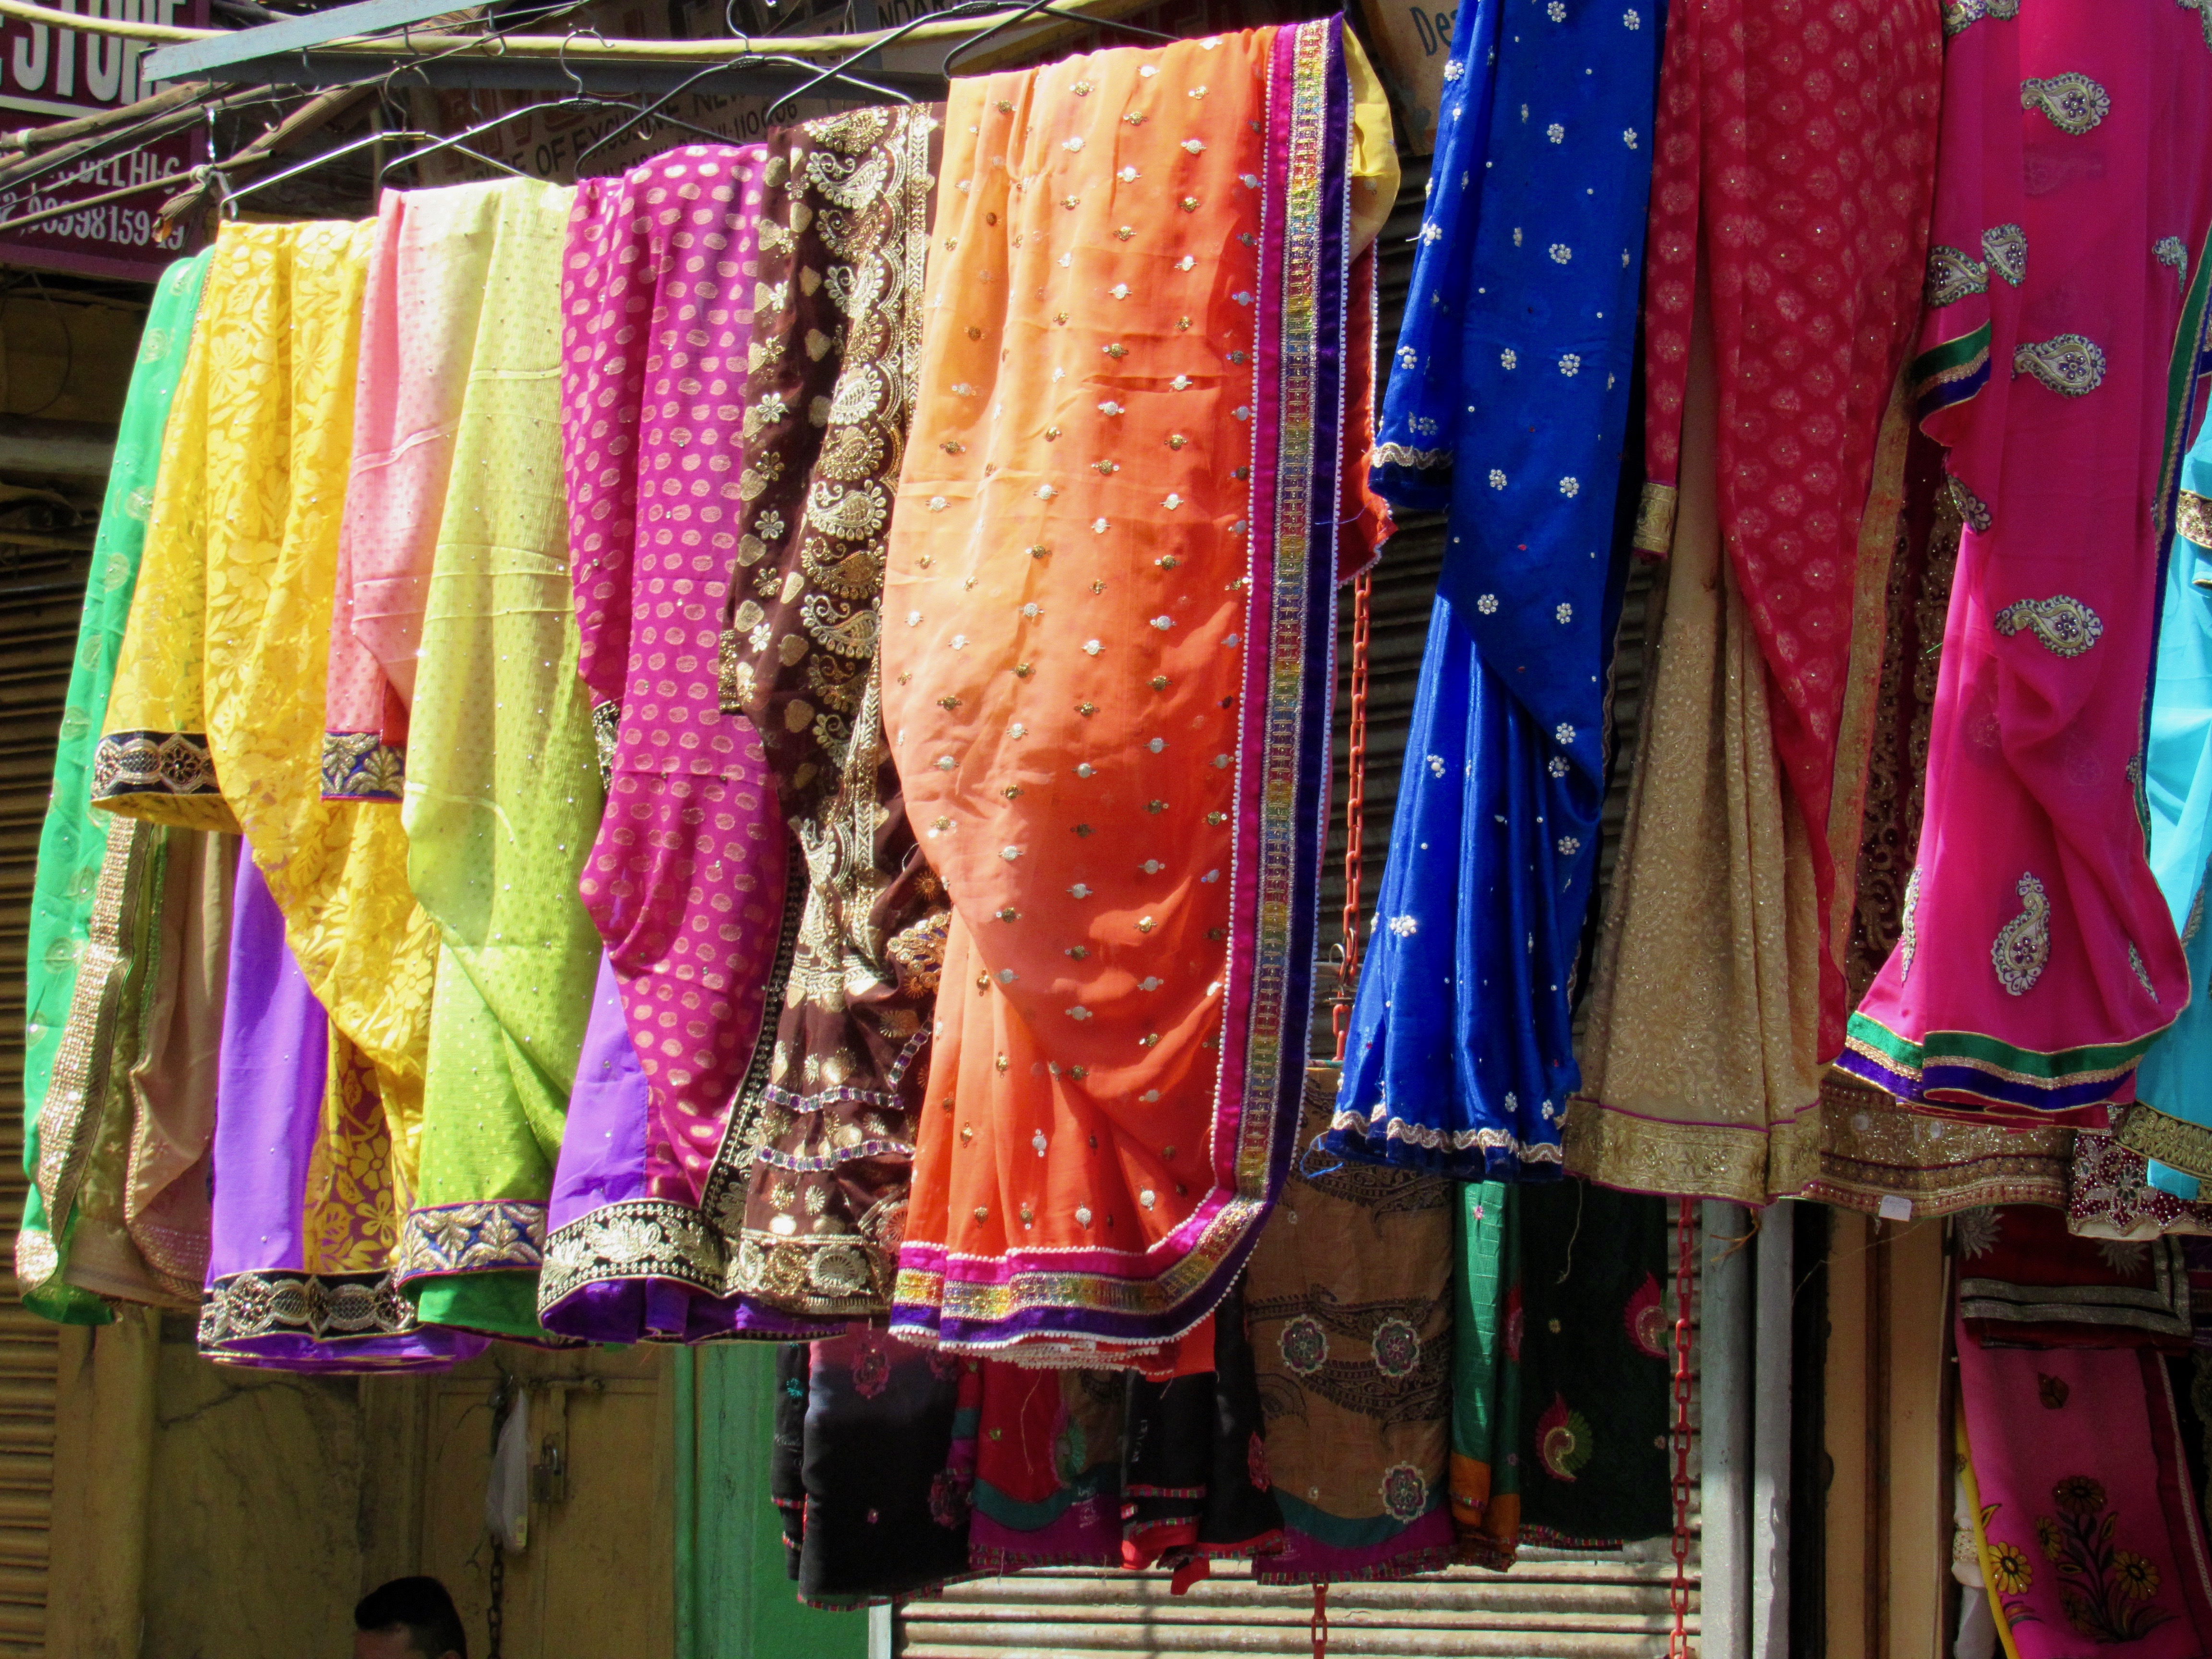 this line of saris